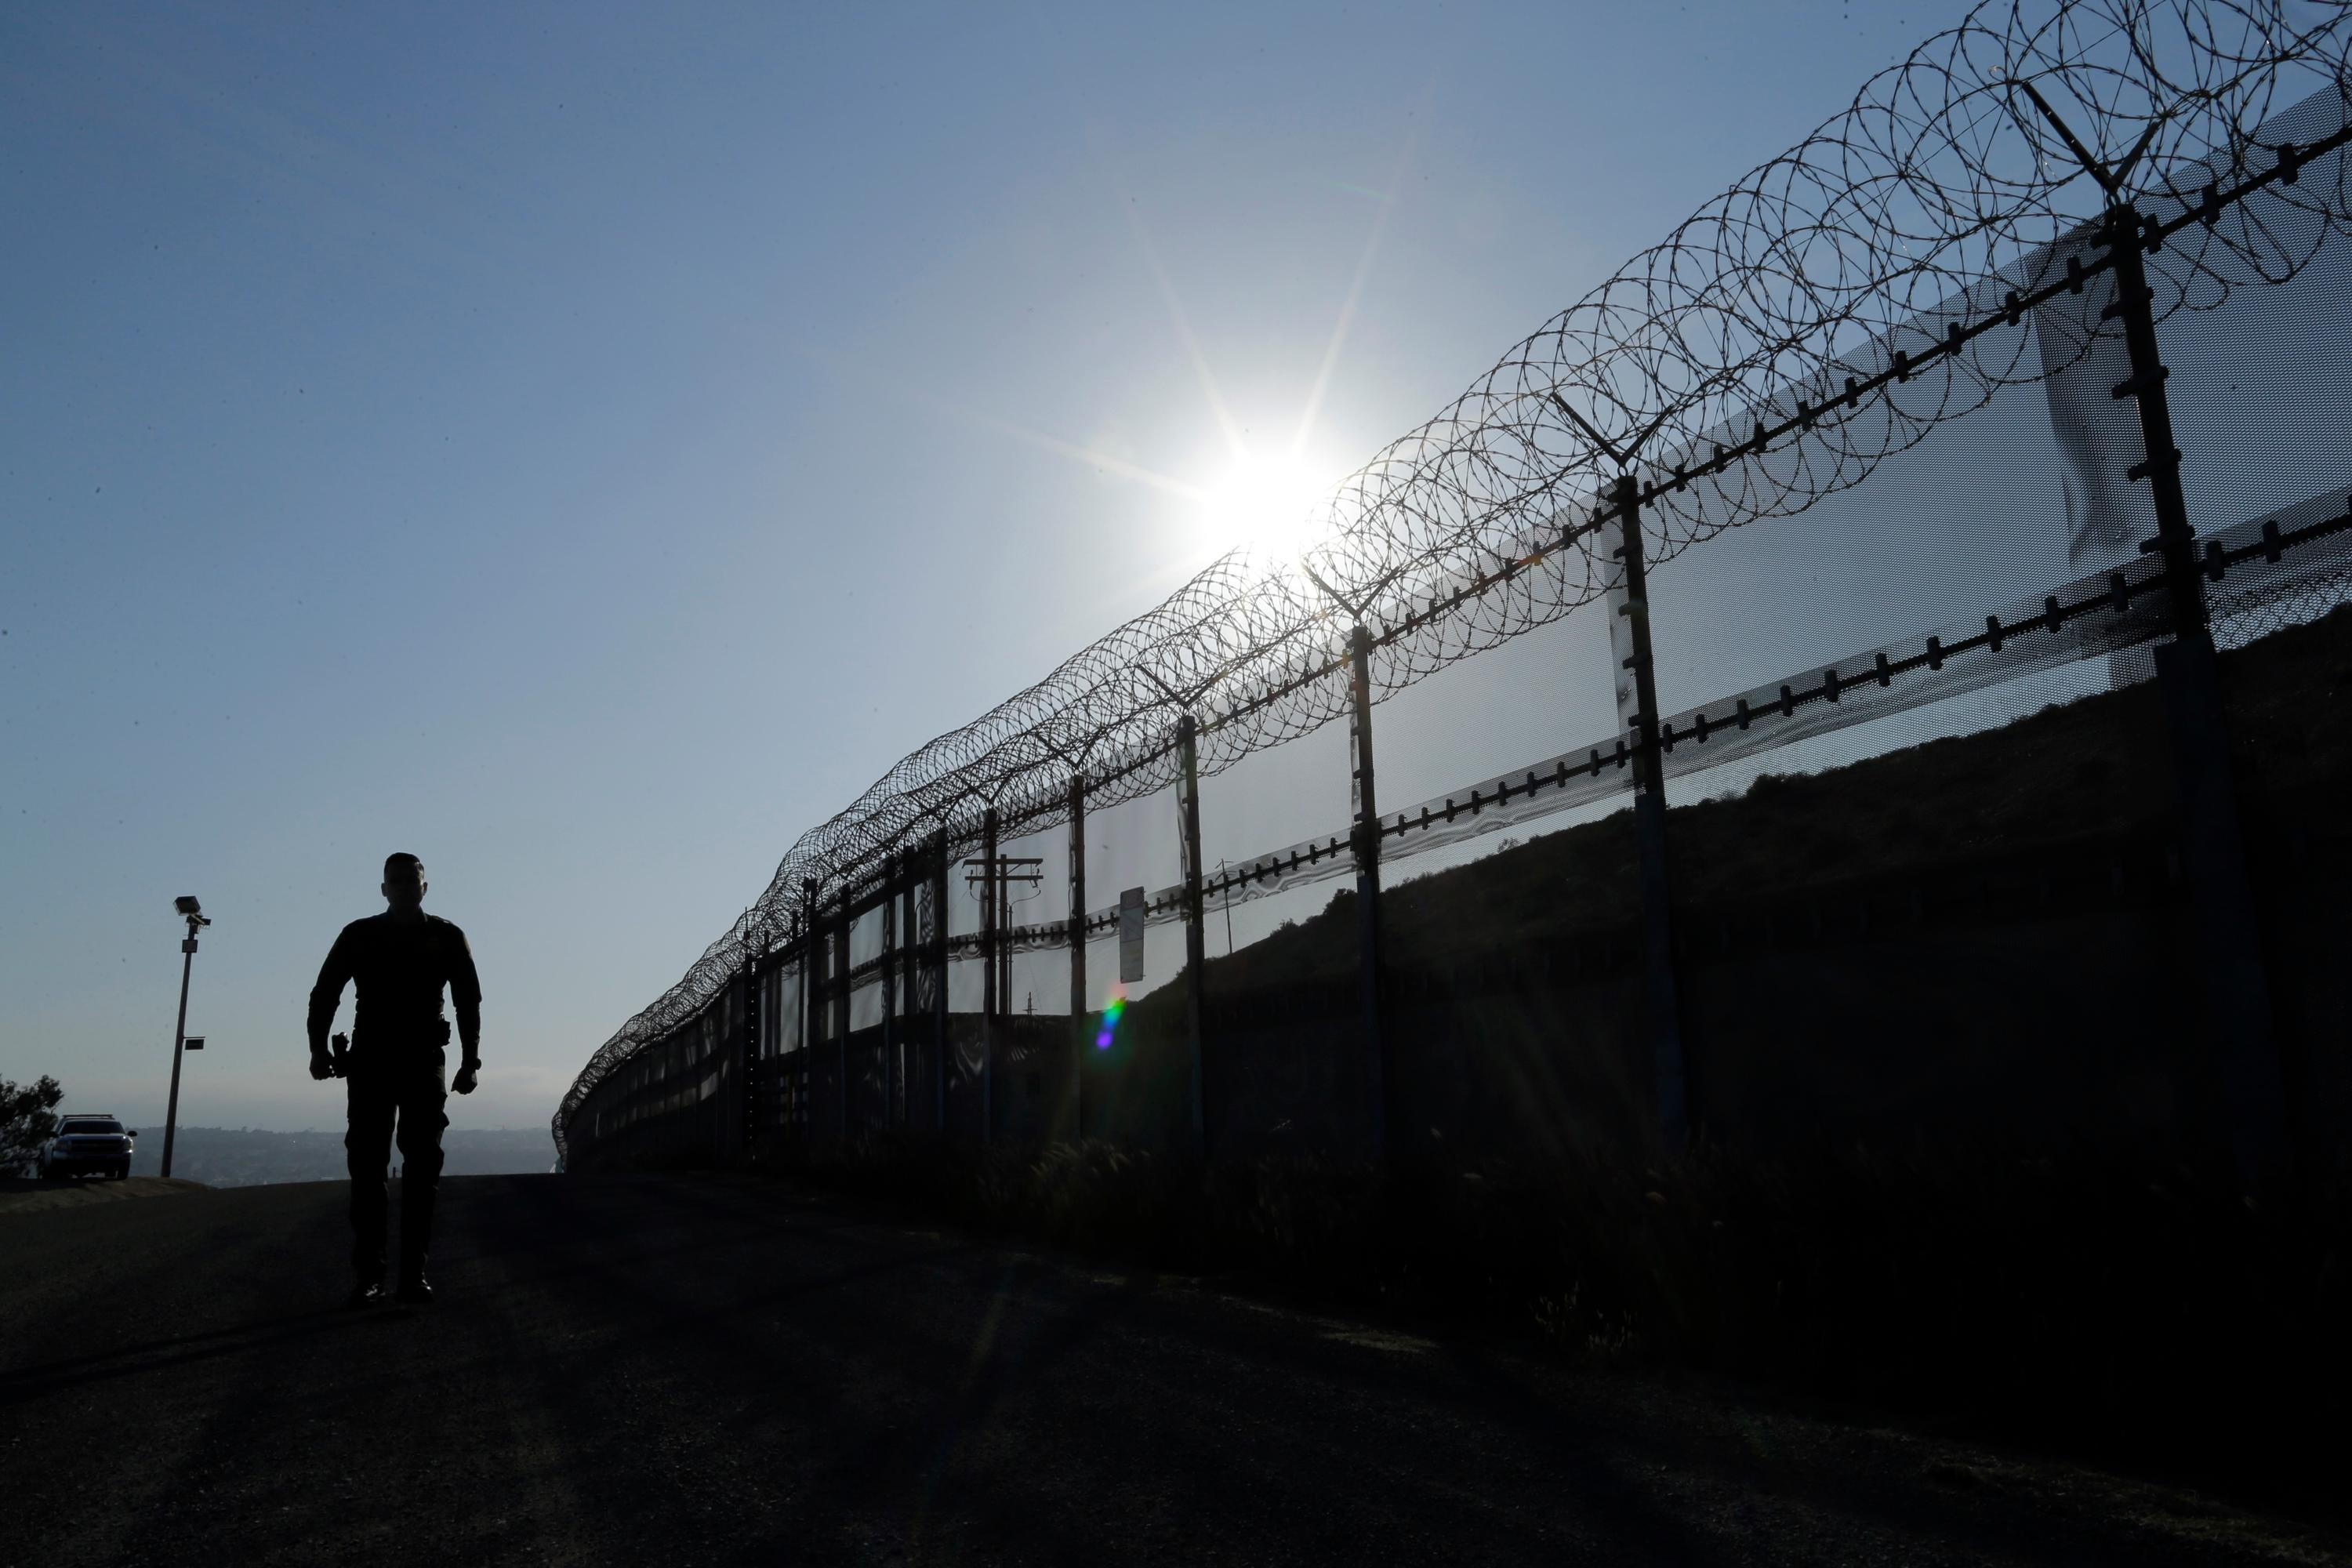 FILE - In this June 22, 2016 file photo, a Border Patrol agent walks along a border structure in San Diego, Calif. The Trump administration has proposed spending $18 billion over 10 years to significantly extend the border wall with Mexico.{&amp;nbsp;} (AP Photo/Gregory Bull, File)<p></p>